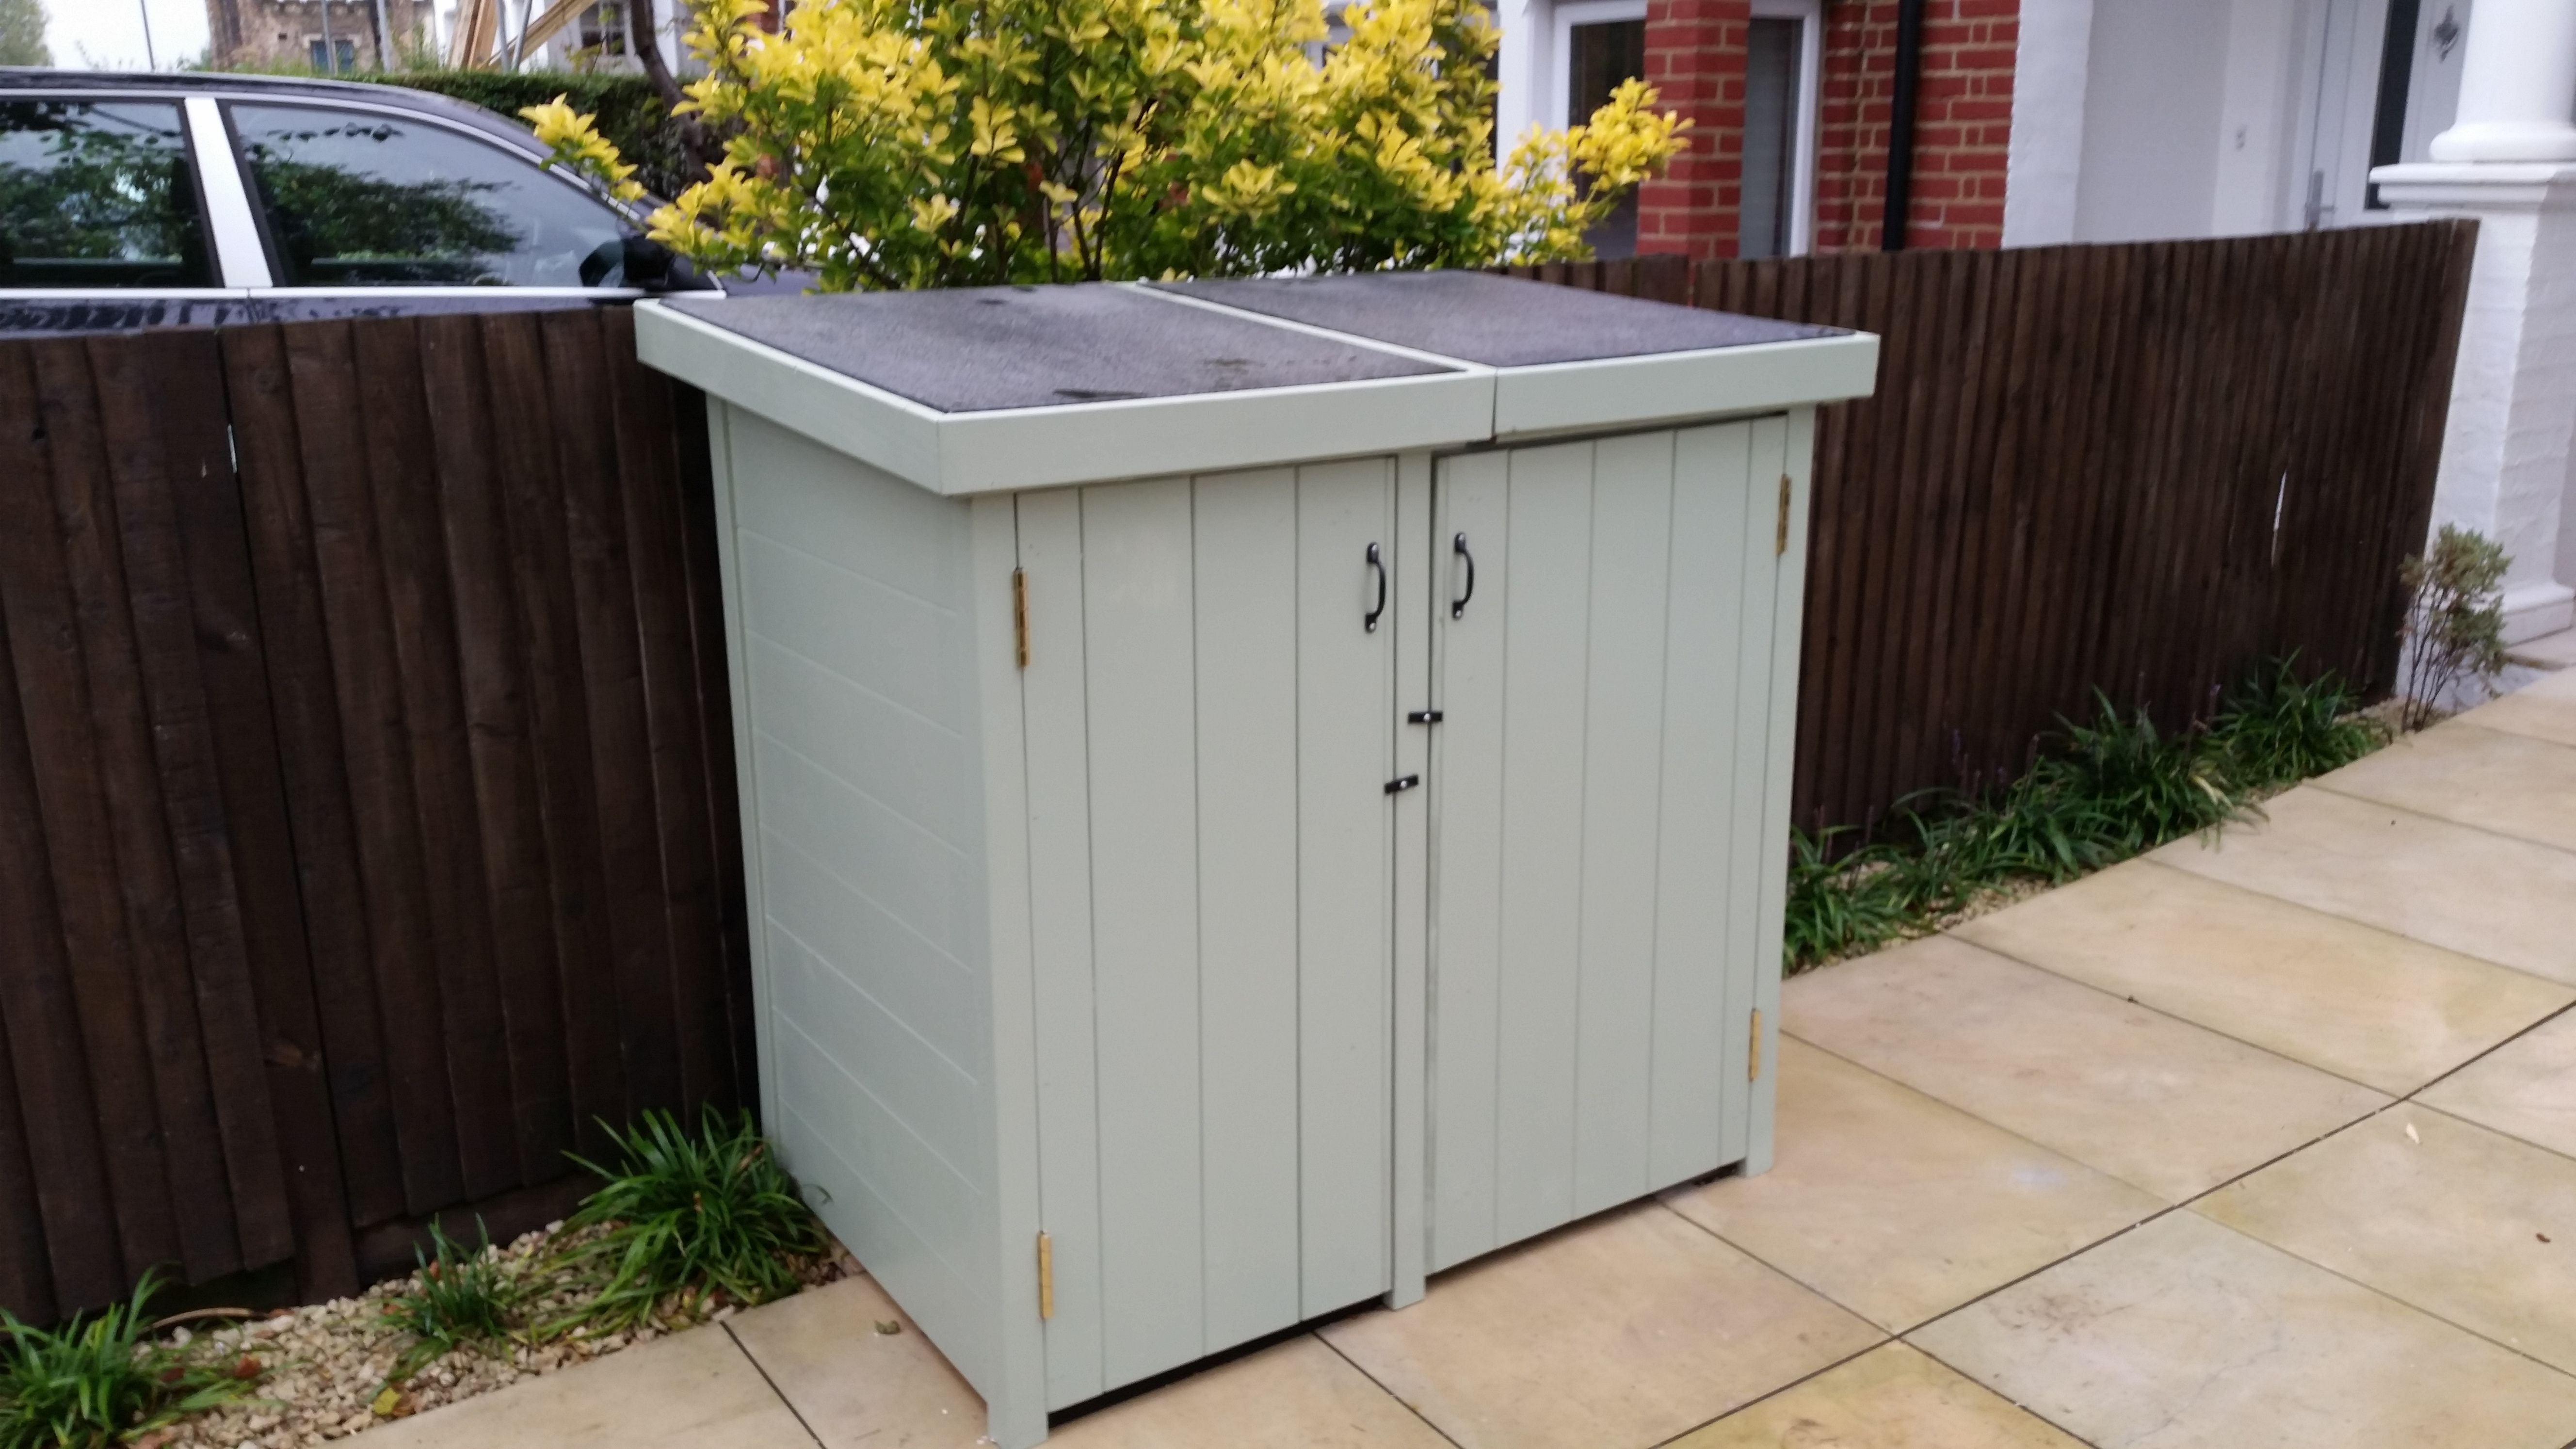 Wheelie Bin Storage By The Bike Shed Company